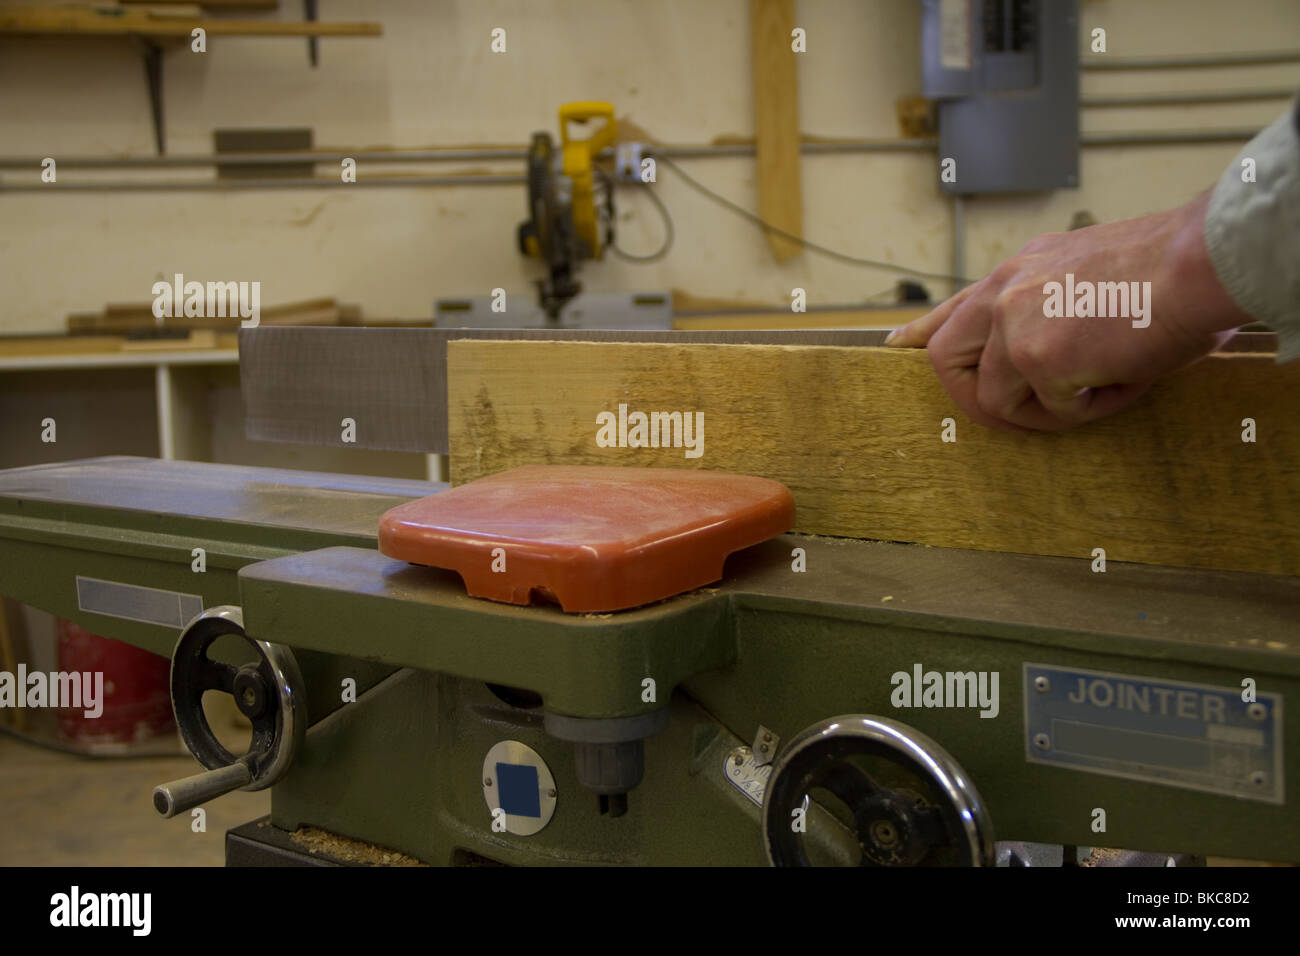 Jointer in Operation - Stock Image